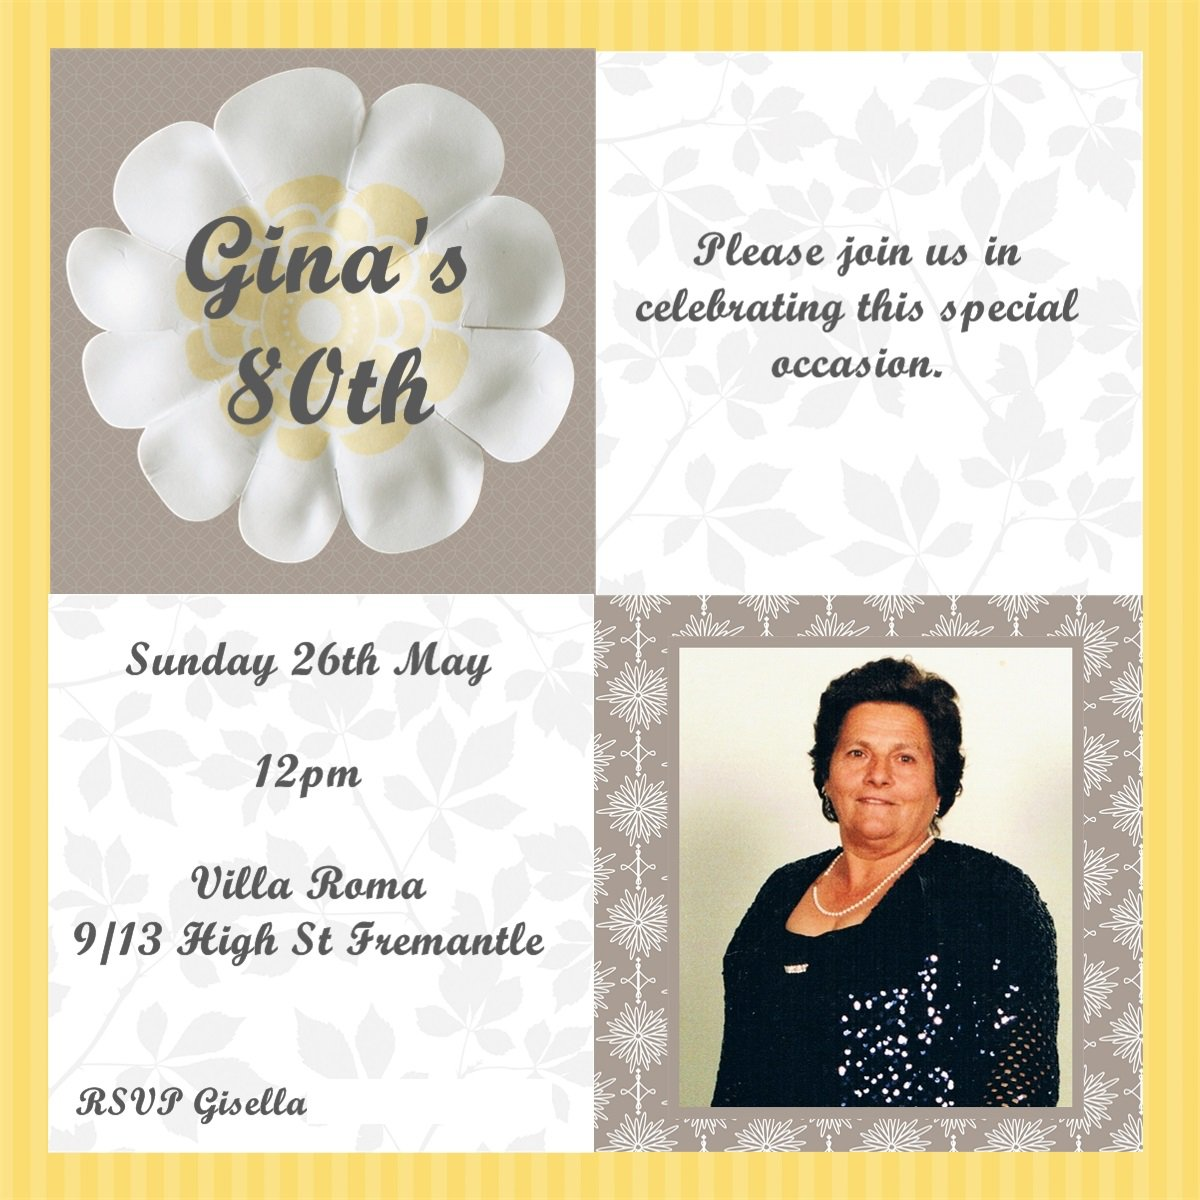 For Her 80th Birthday Invitations